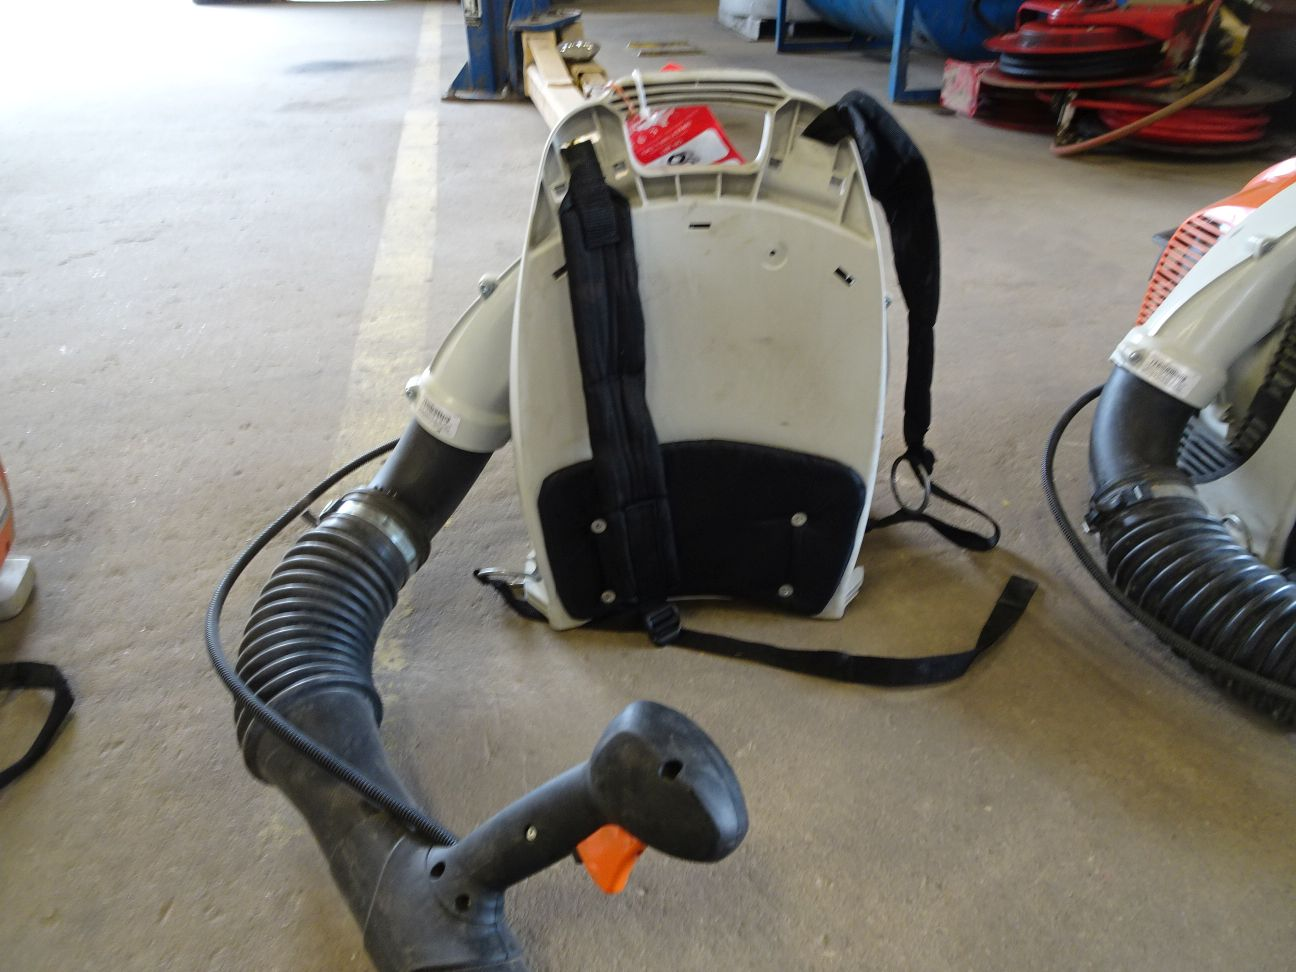 Lot 8 - STIHL BR350 GAS POWERED BACKPACK BLOWER (LOCATION: SHOP)